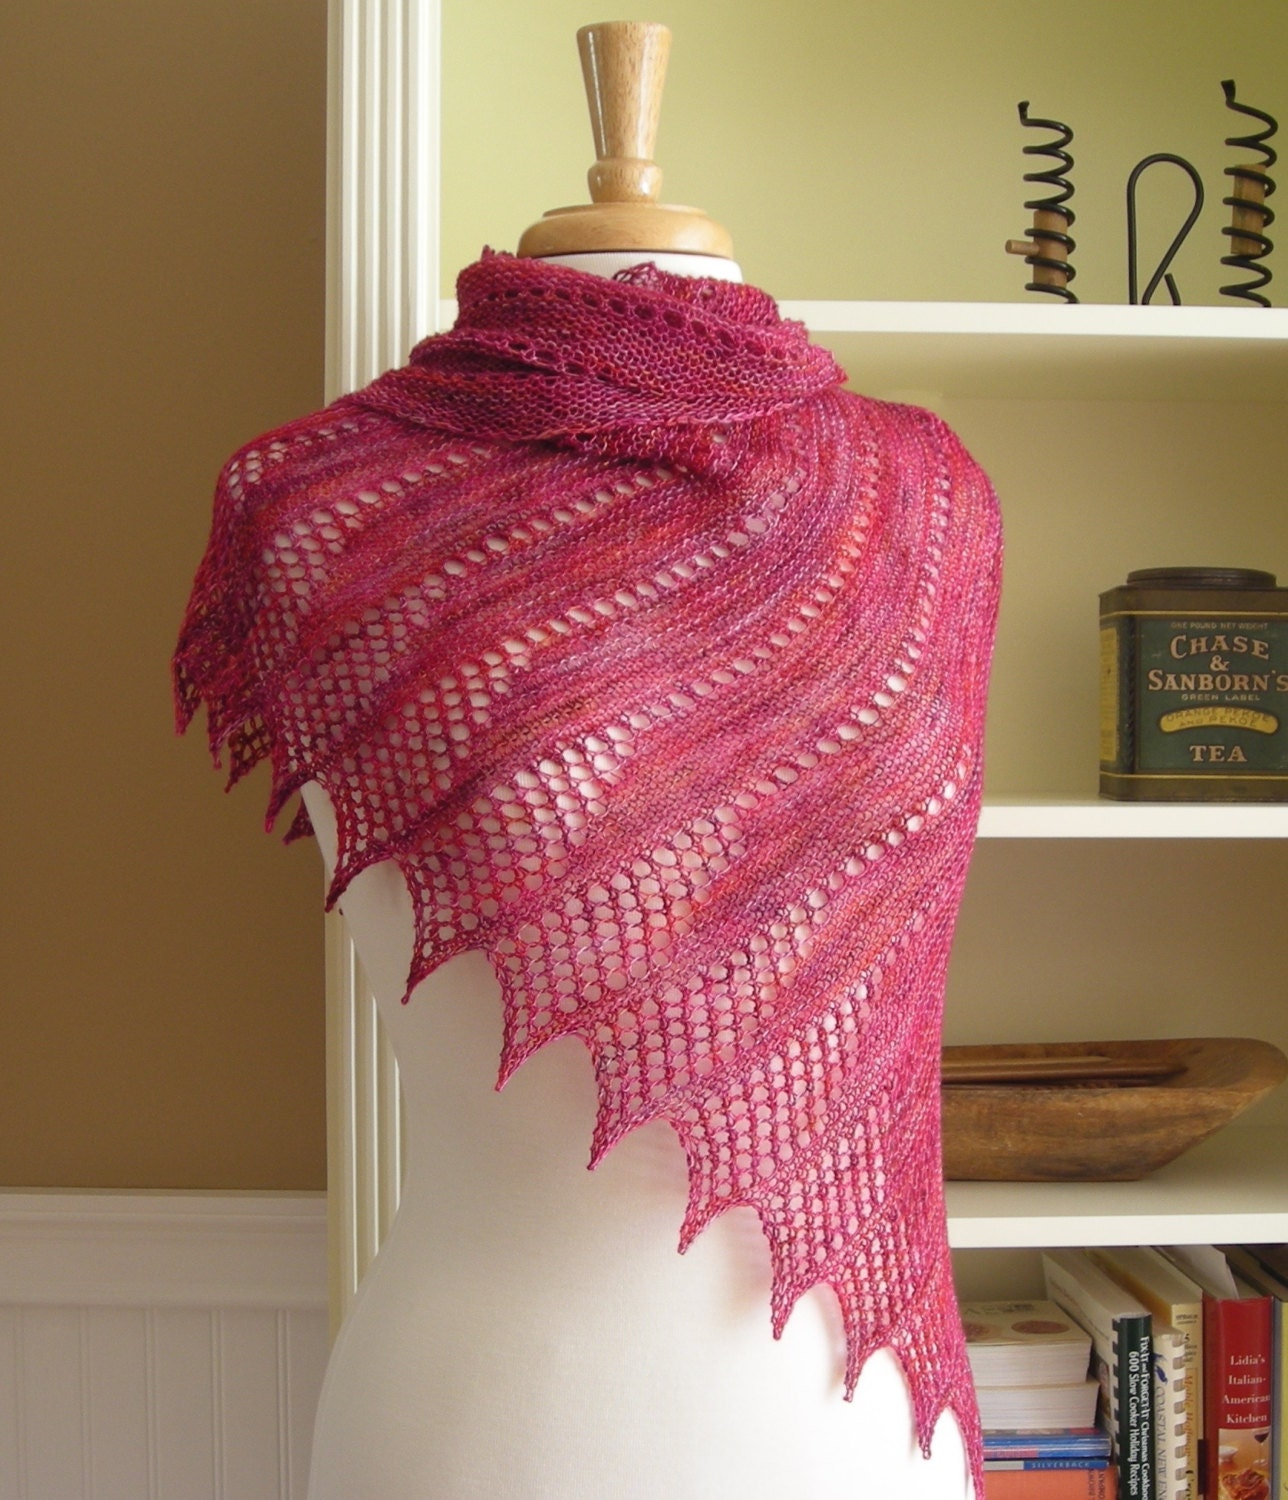 Lace shawl knitting pattern pdf mistral shawl asymetric zoom bankloansurffo Image collections